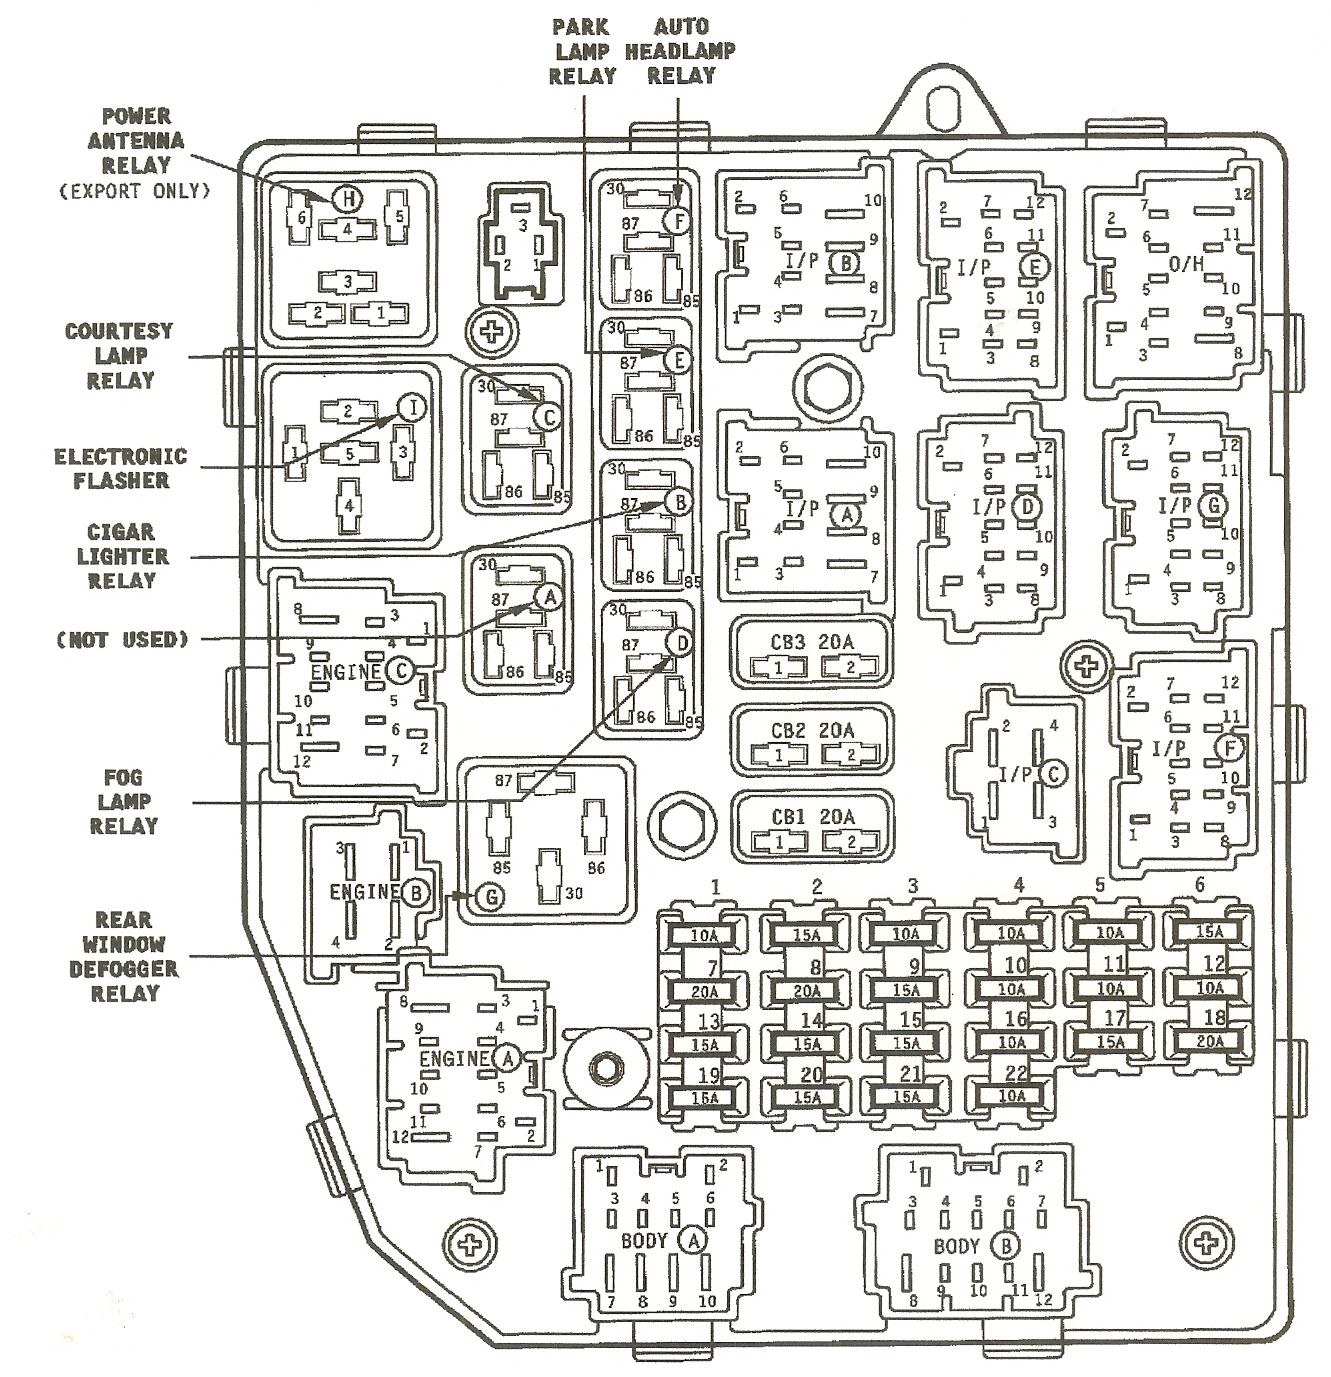 jeep zj fuse box diagram simple wiring schema 1996 jeep cherokee fuse diagram jeep zj fuse diagram [ 1331 x 1377 Pixel ]